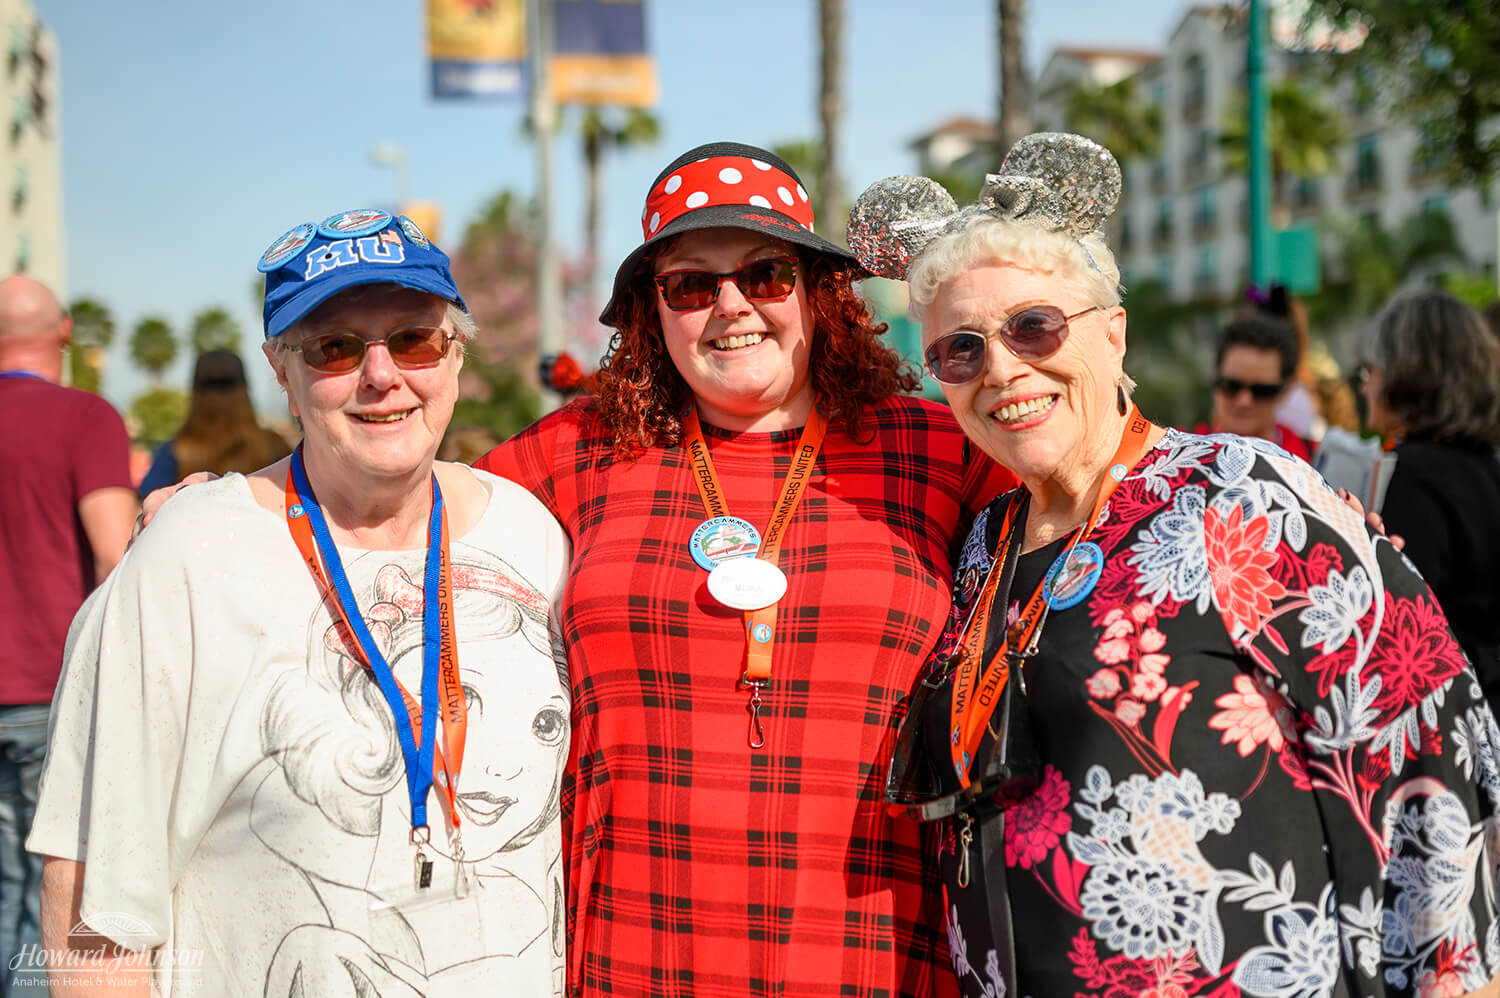 Three women wearing Disney hats and lanyards smile for the camera